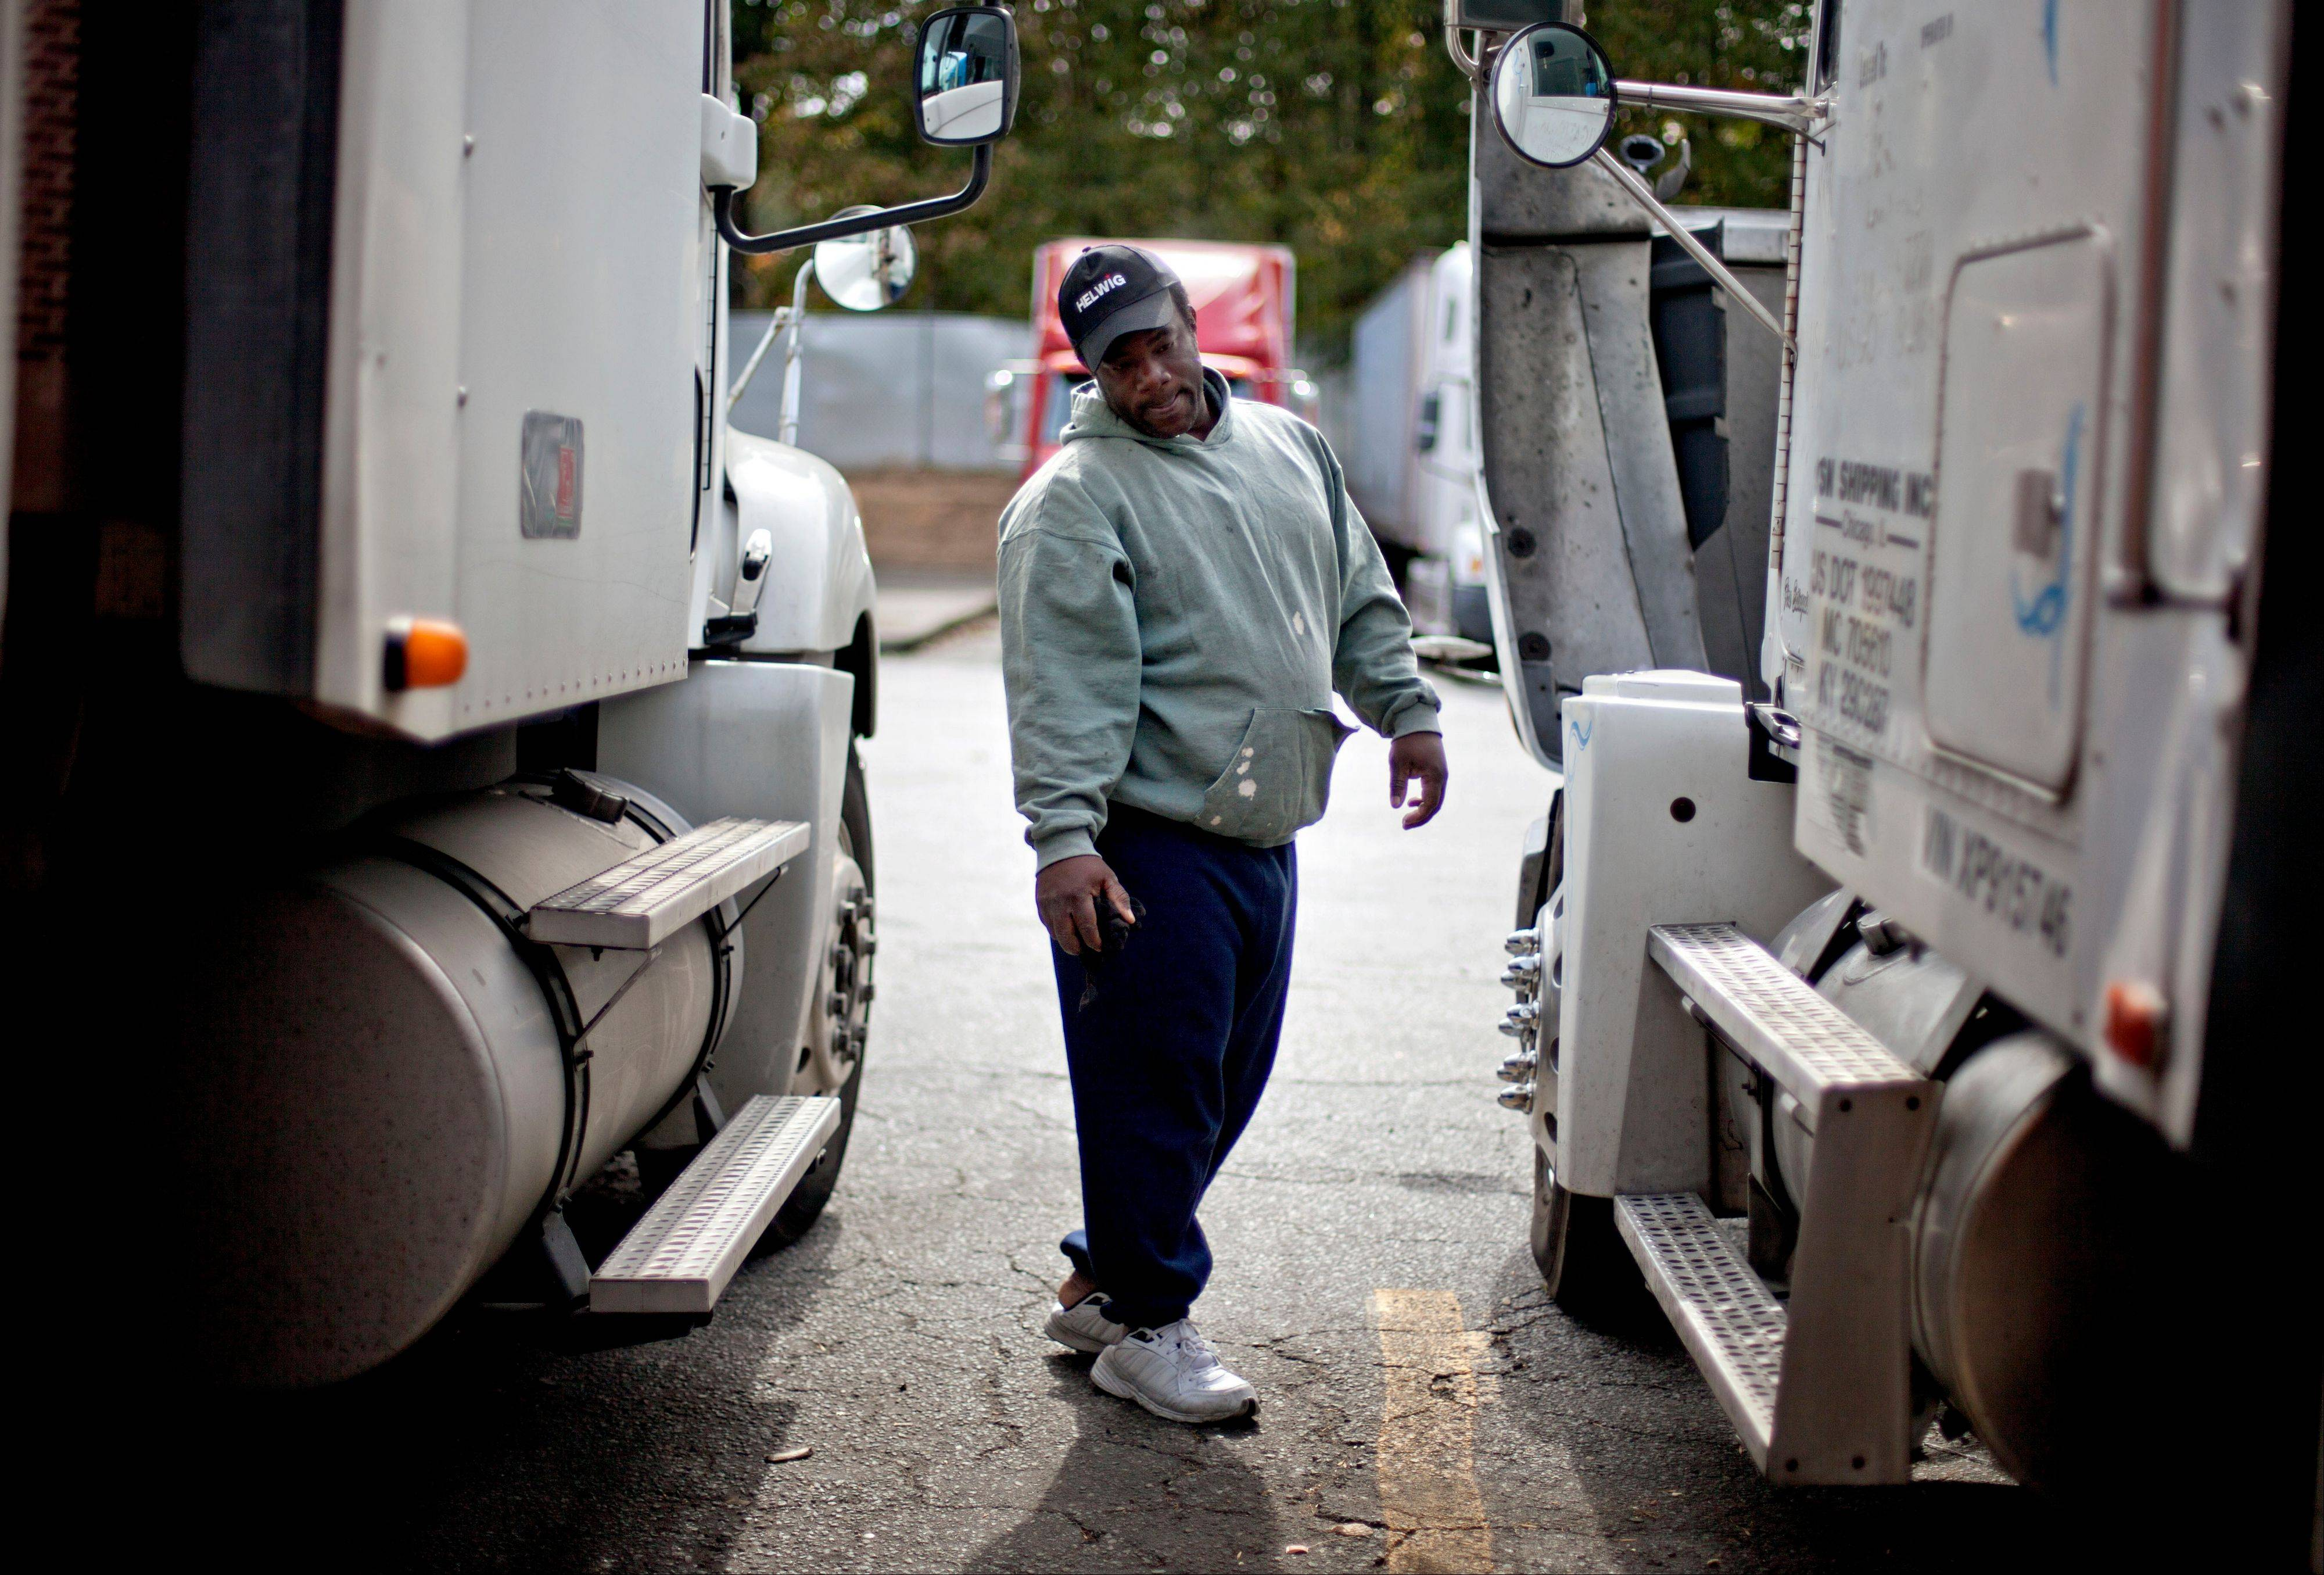 Truck driver Earliest Madir inspects his truck while waiting for a load at a truck stop Tuesday, Oct. 30, 2012, in Atlanta. Even amid a struggling economy with high unemployment, trucking companies had a tough time hiring young drivers willing to hit the road for long hauls. Now the U.S. is speeding toward a critical shortage of truck drivers in the next few years as the economy recovers and demand for goods increases, an expert in the inner-workings of supply chains said in a report Tuesday.